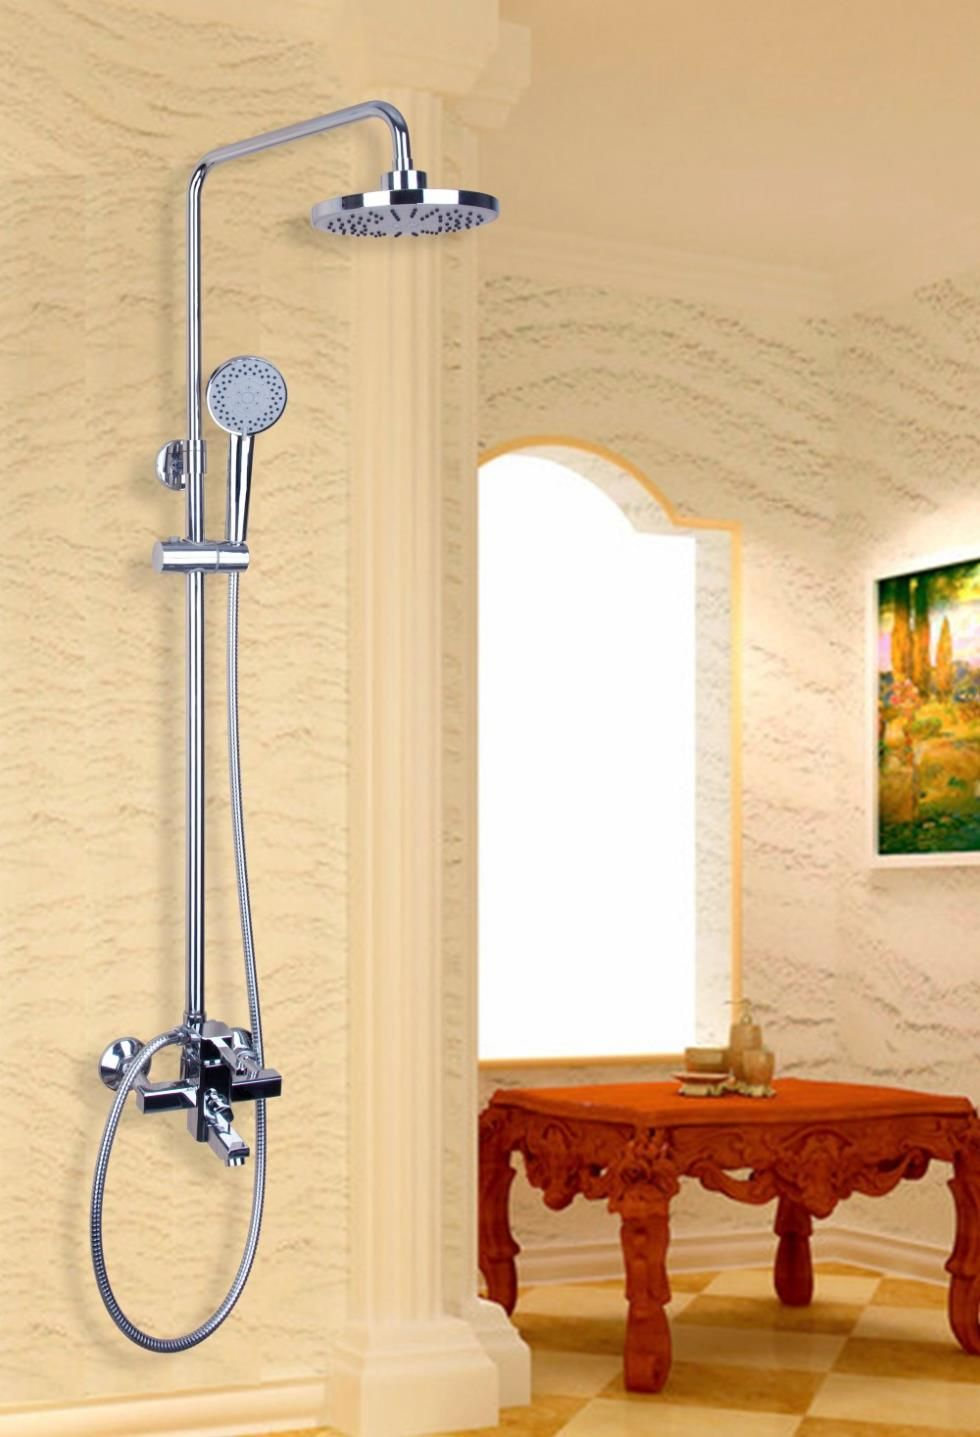 53101 Luxury Wall Mounted Bathroom Rain Shower Faucet Head Set Wall ...